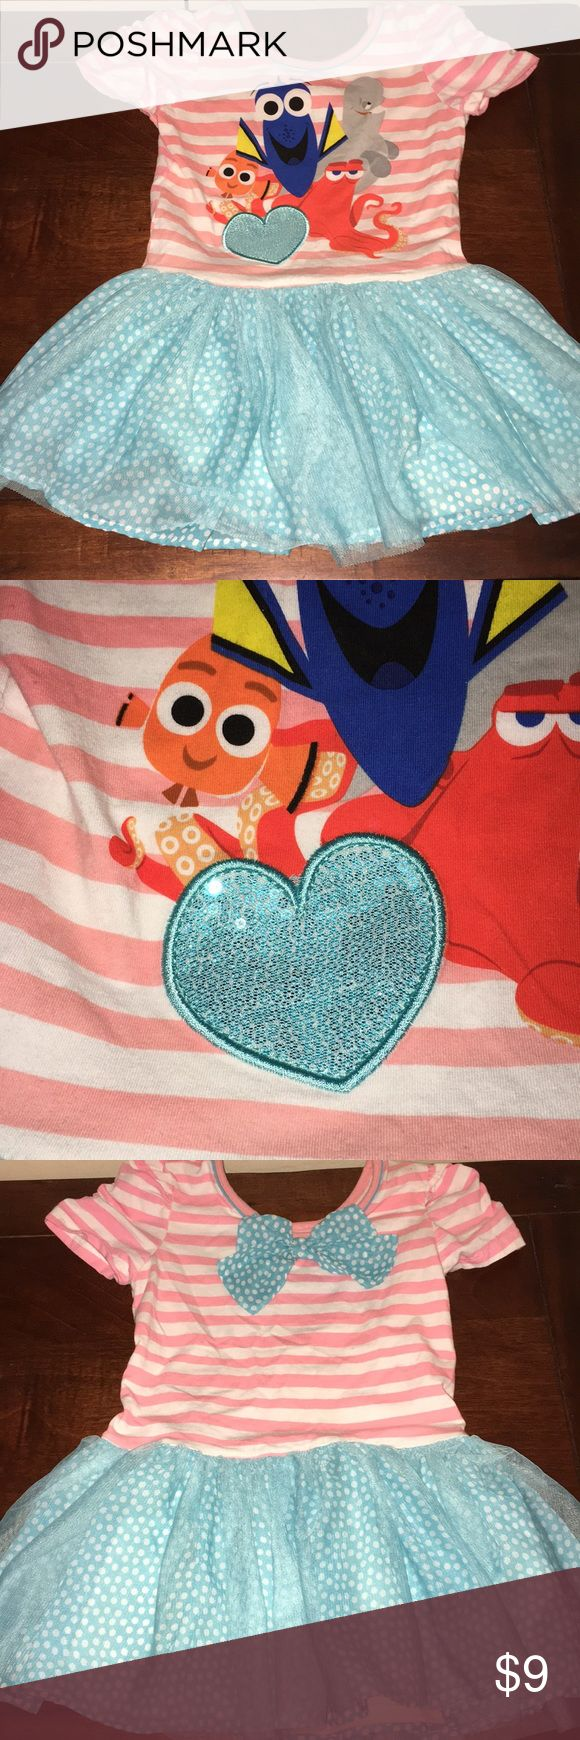 Girls Disney finding dory dress size 5x Pink striped dress on top with blue tutu material with polka dots on bottom  Heart is sequined  Back has a bow on top Sleeves are elastic scrunch Size 5x Disney Dresses Casual